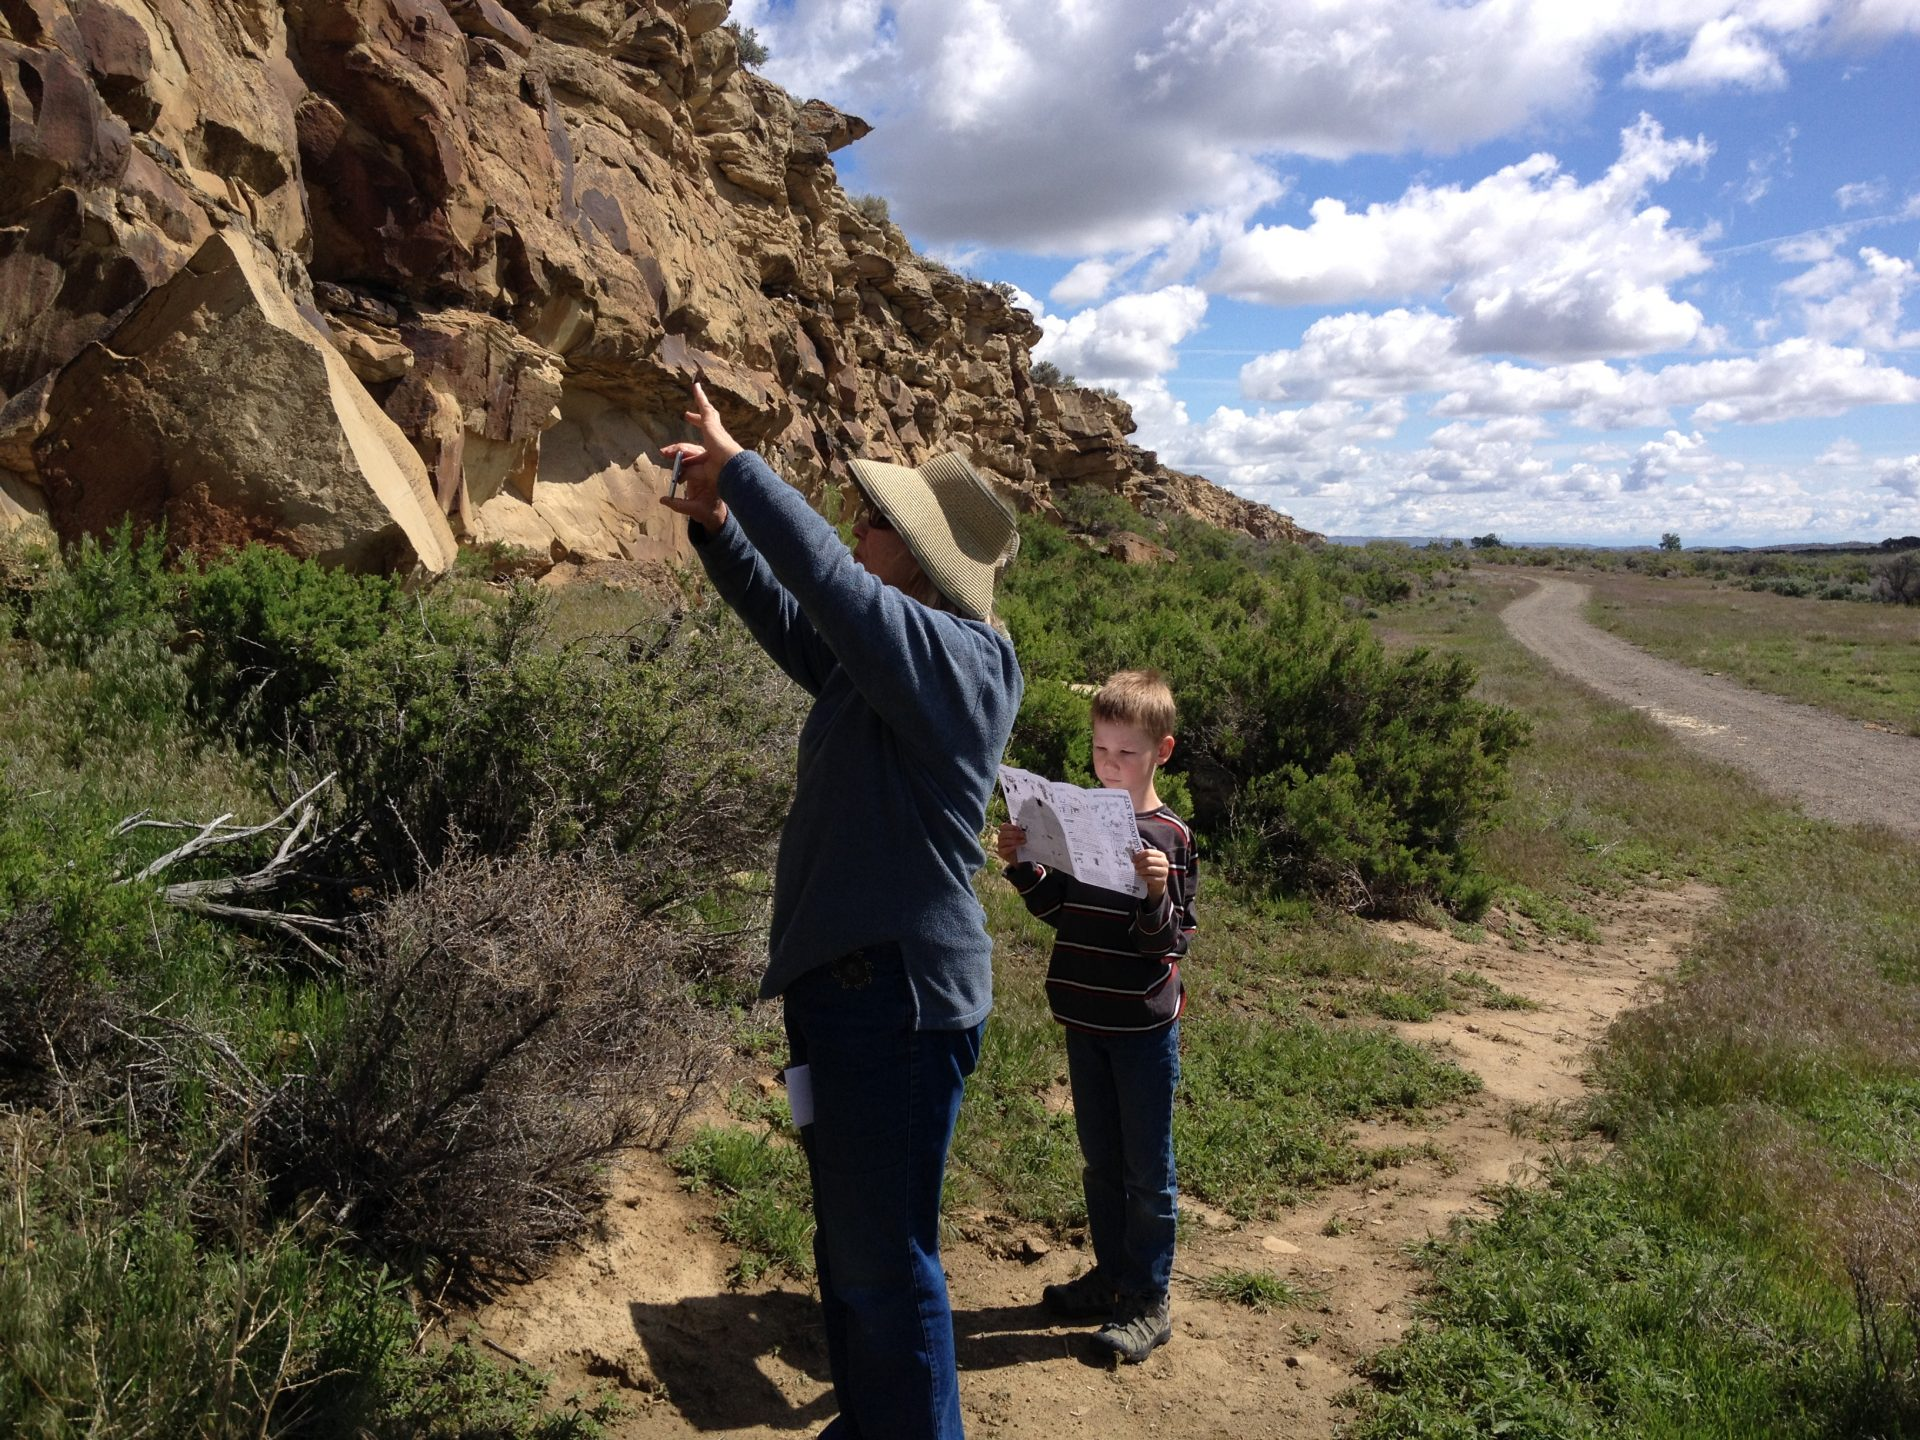 Using the interpretive map to understand the petroglyphs at Legend Rock